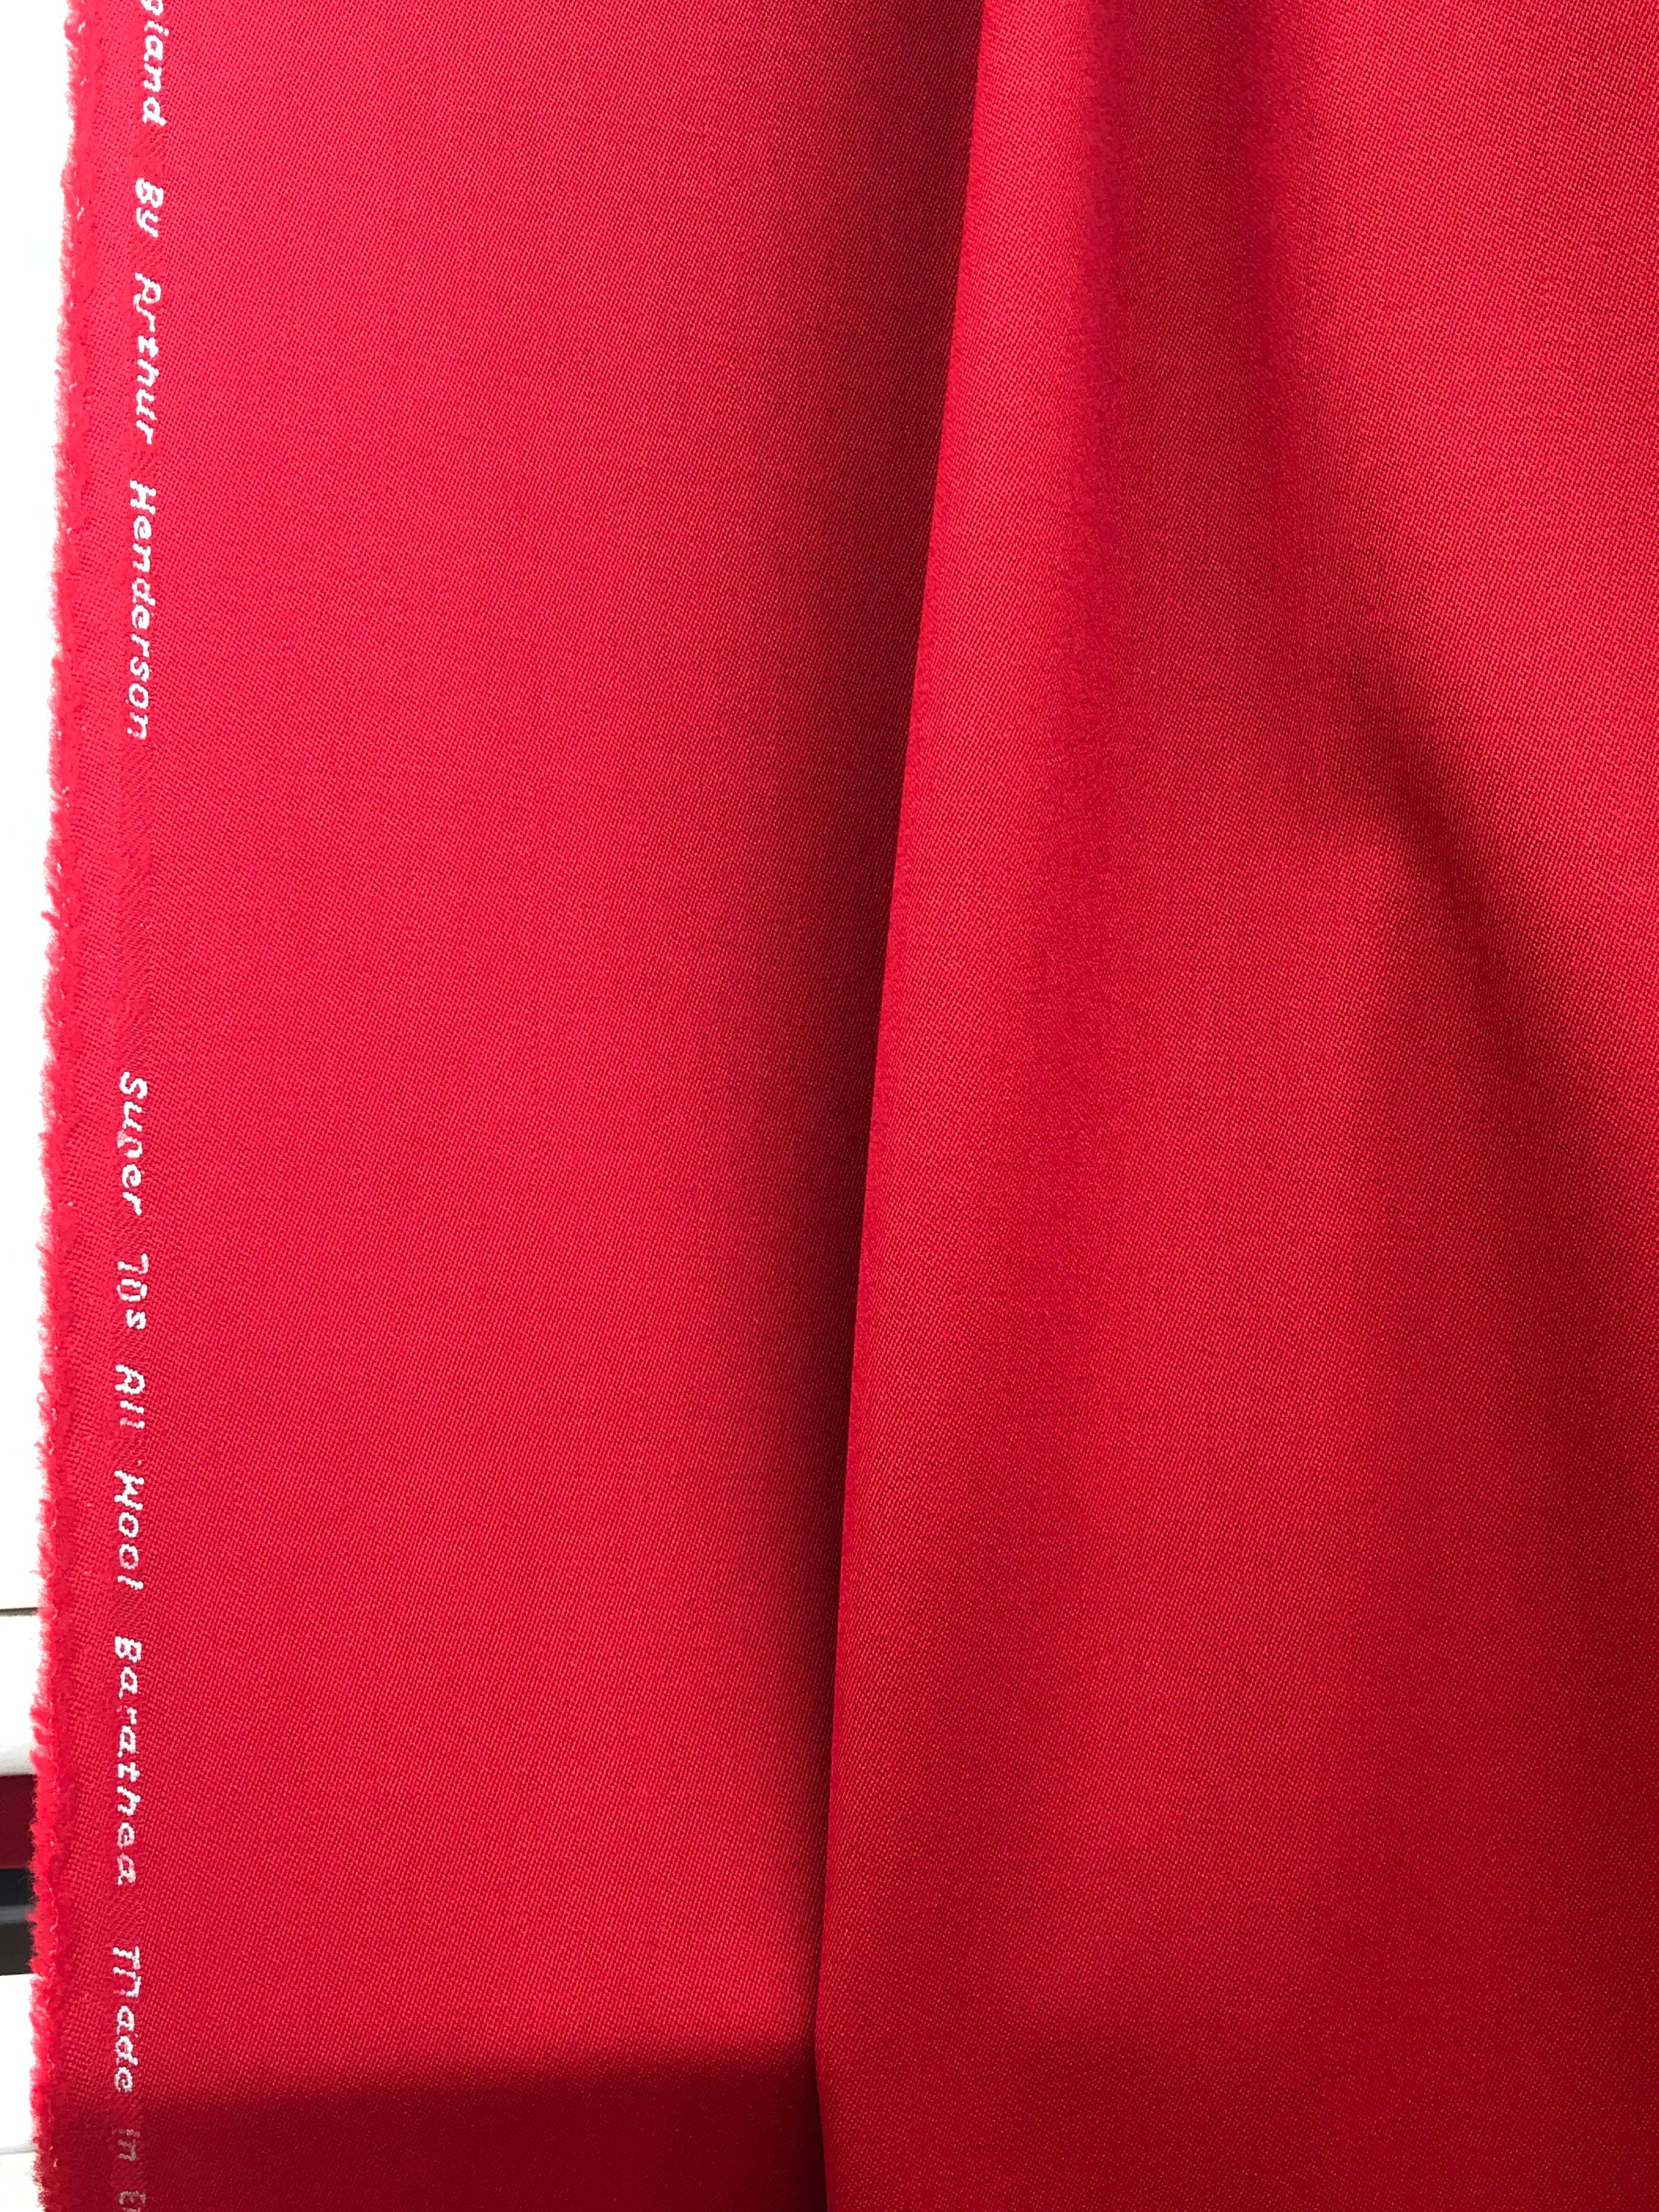 Red Wool Venetian suiting super 70s Barathea  medium weight suiting fabric 100% wool made in England